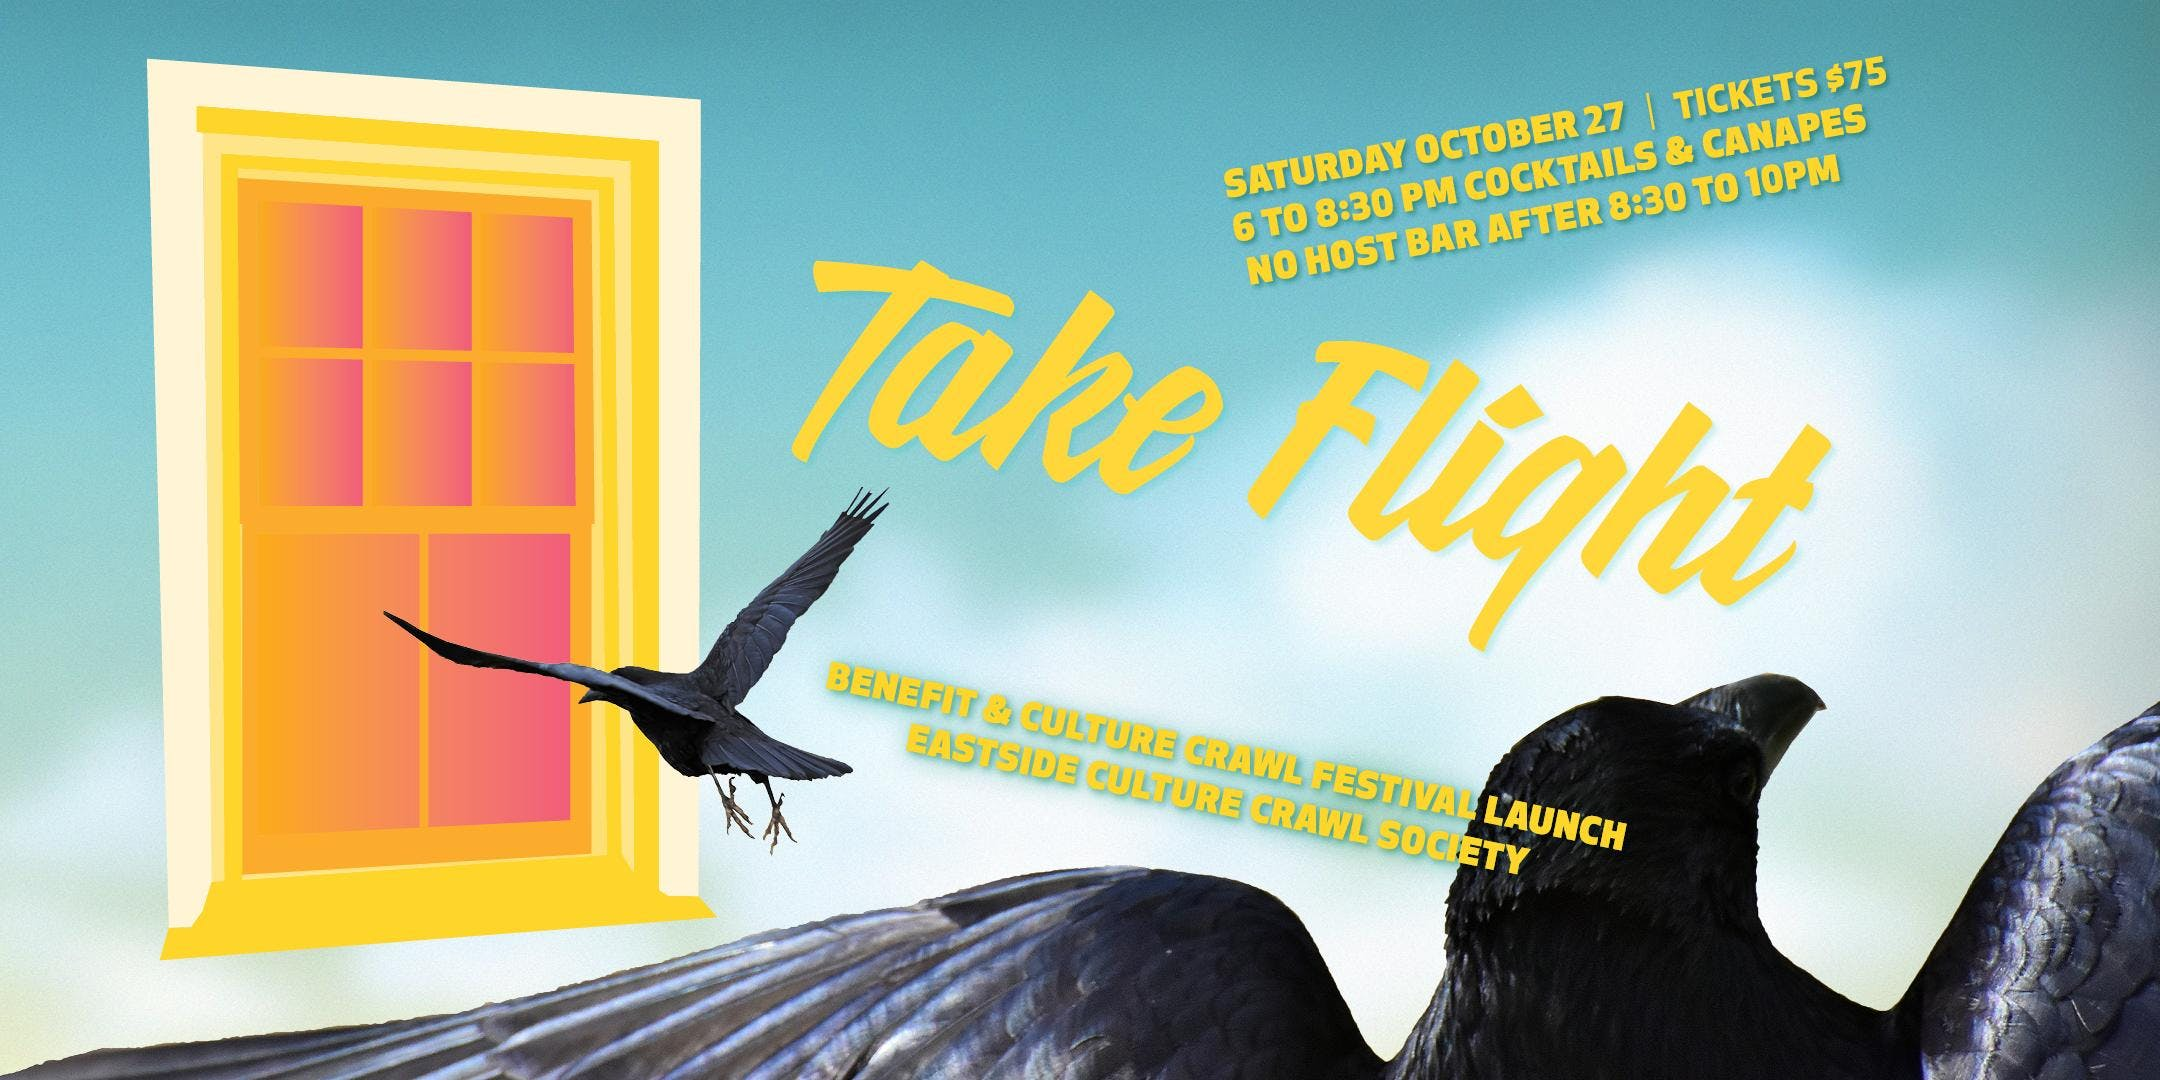 Take Flight: Benefit and Culture Crawl Festival Launch